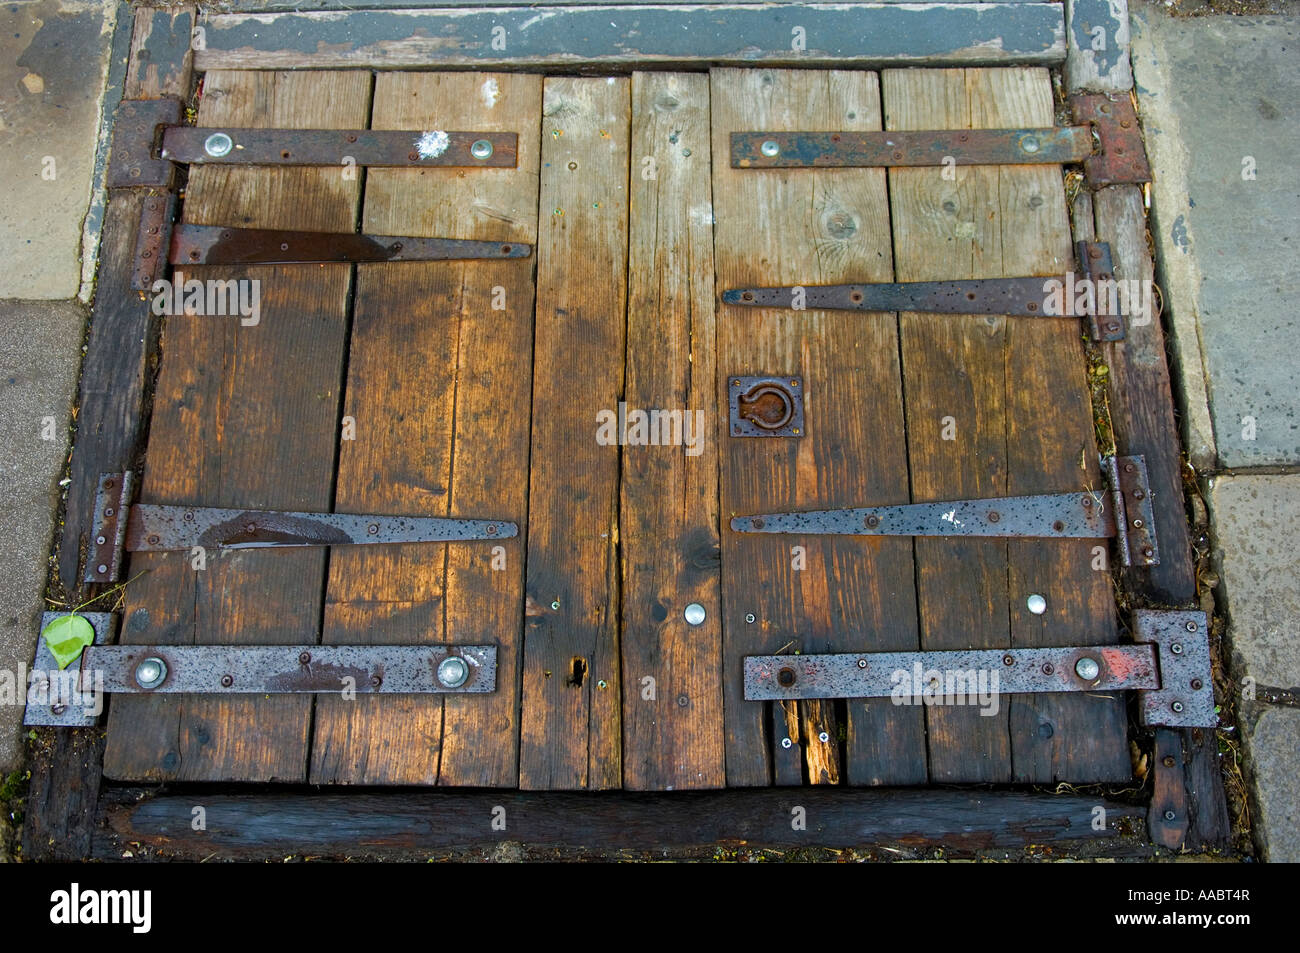 Old wooden pub trap door Stock Photo, Royalty Free Image: 12580342 ...